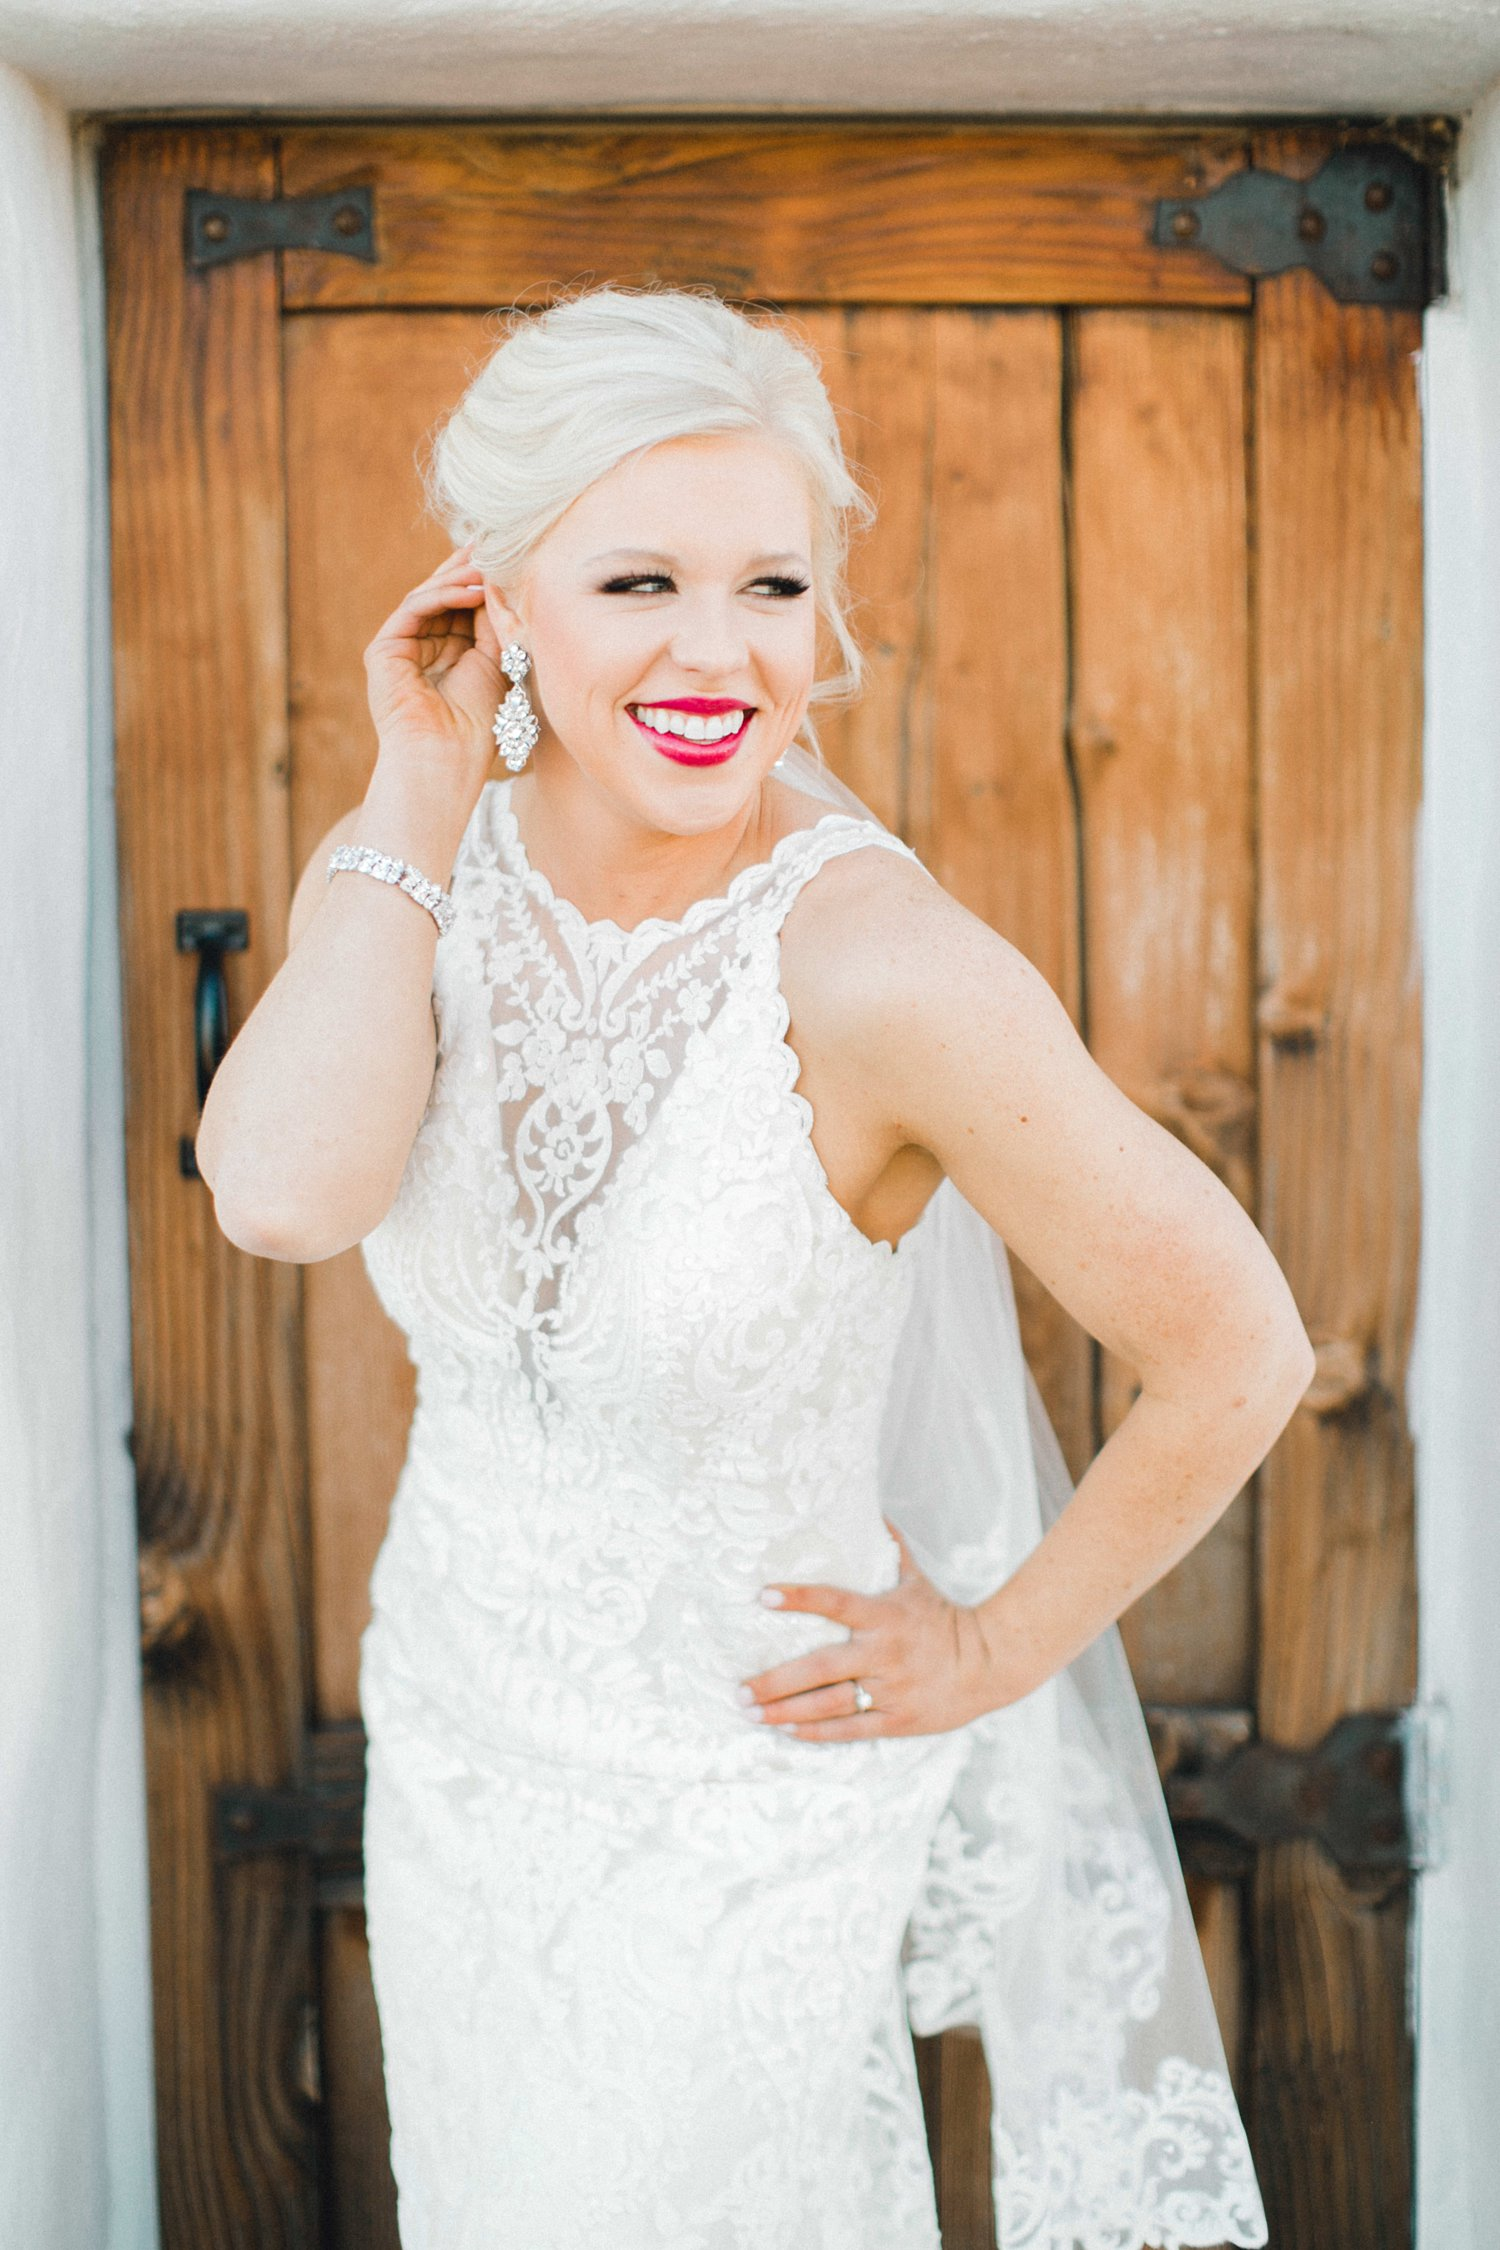 Jenna-evans-bridals-balmorhea-texas-fort-davis-wedding-photographer-lubbock-photographer__0045.jpg